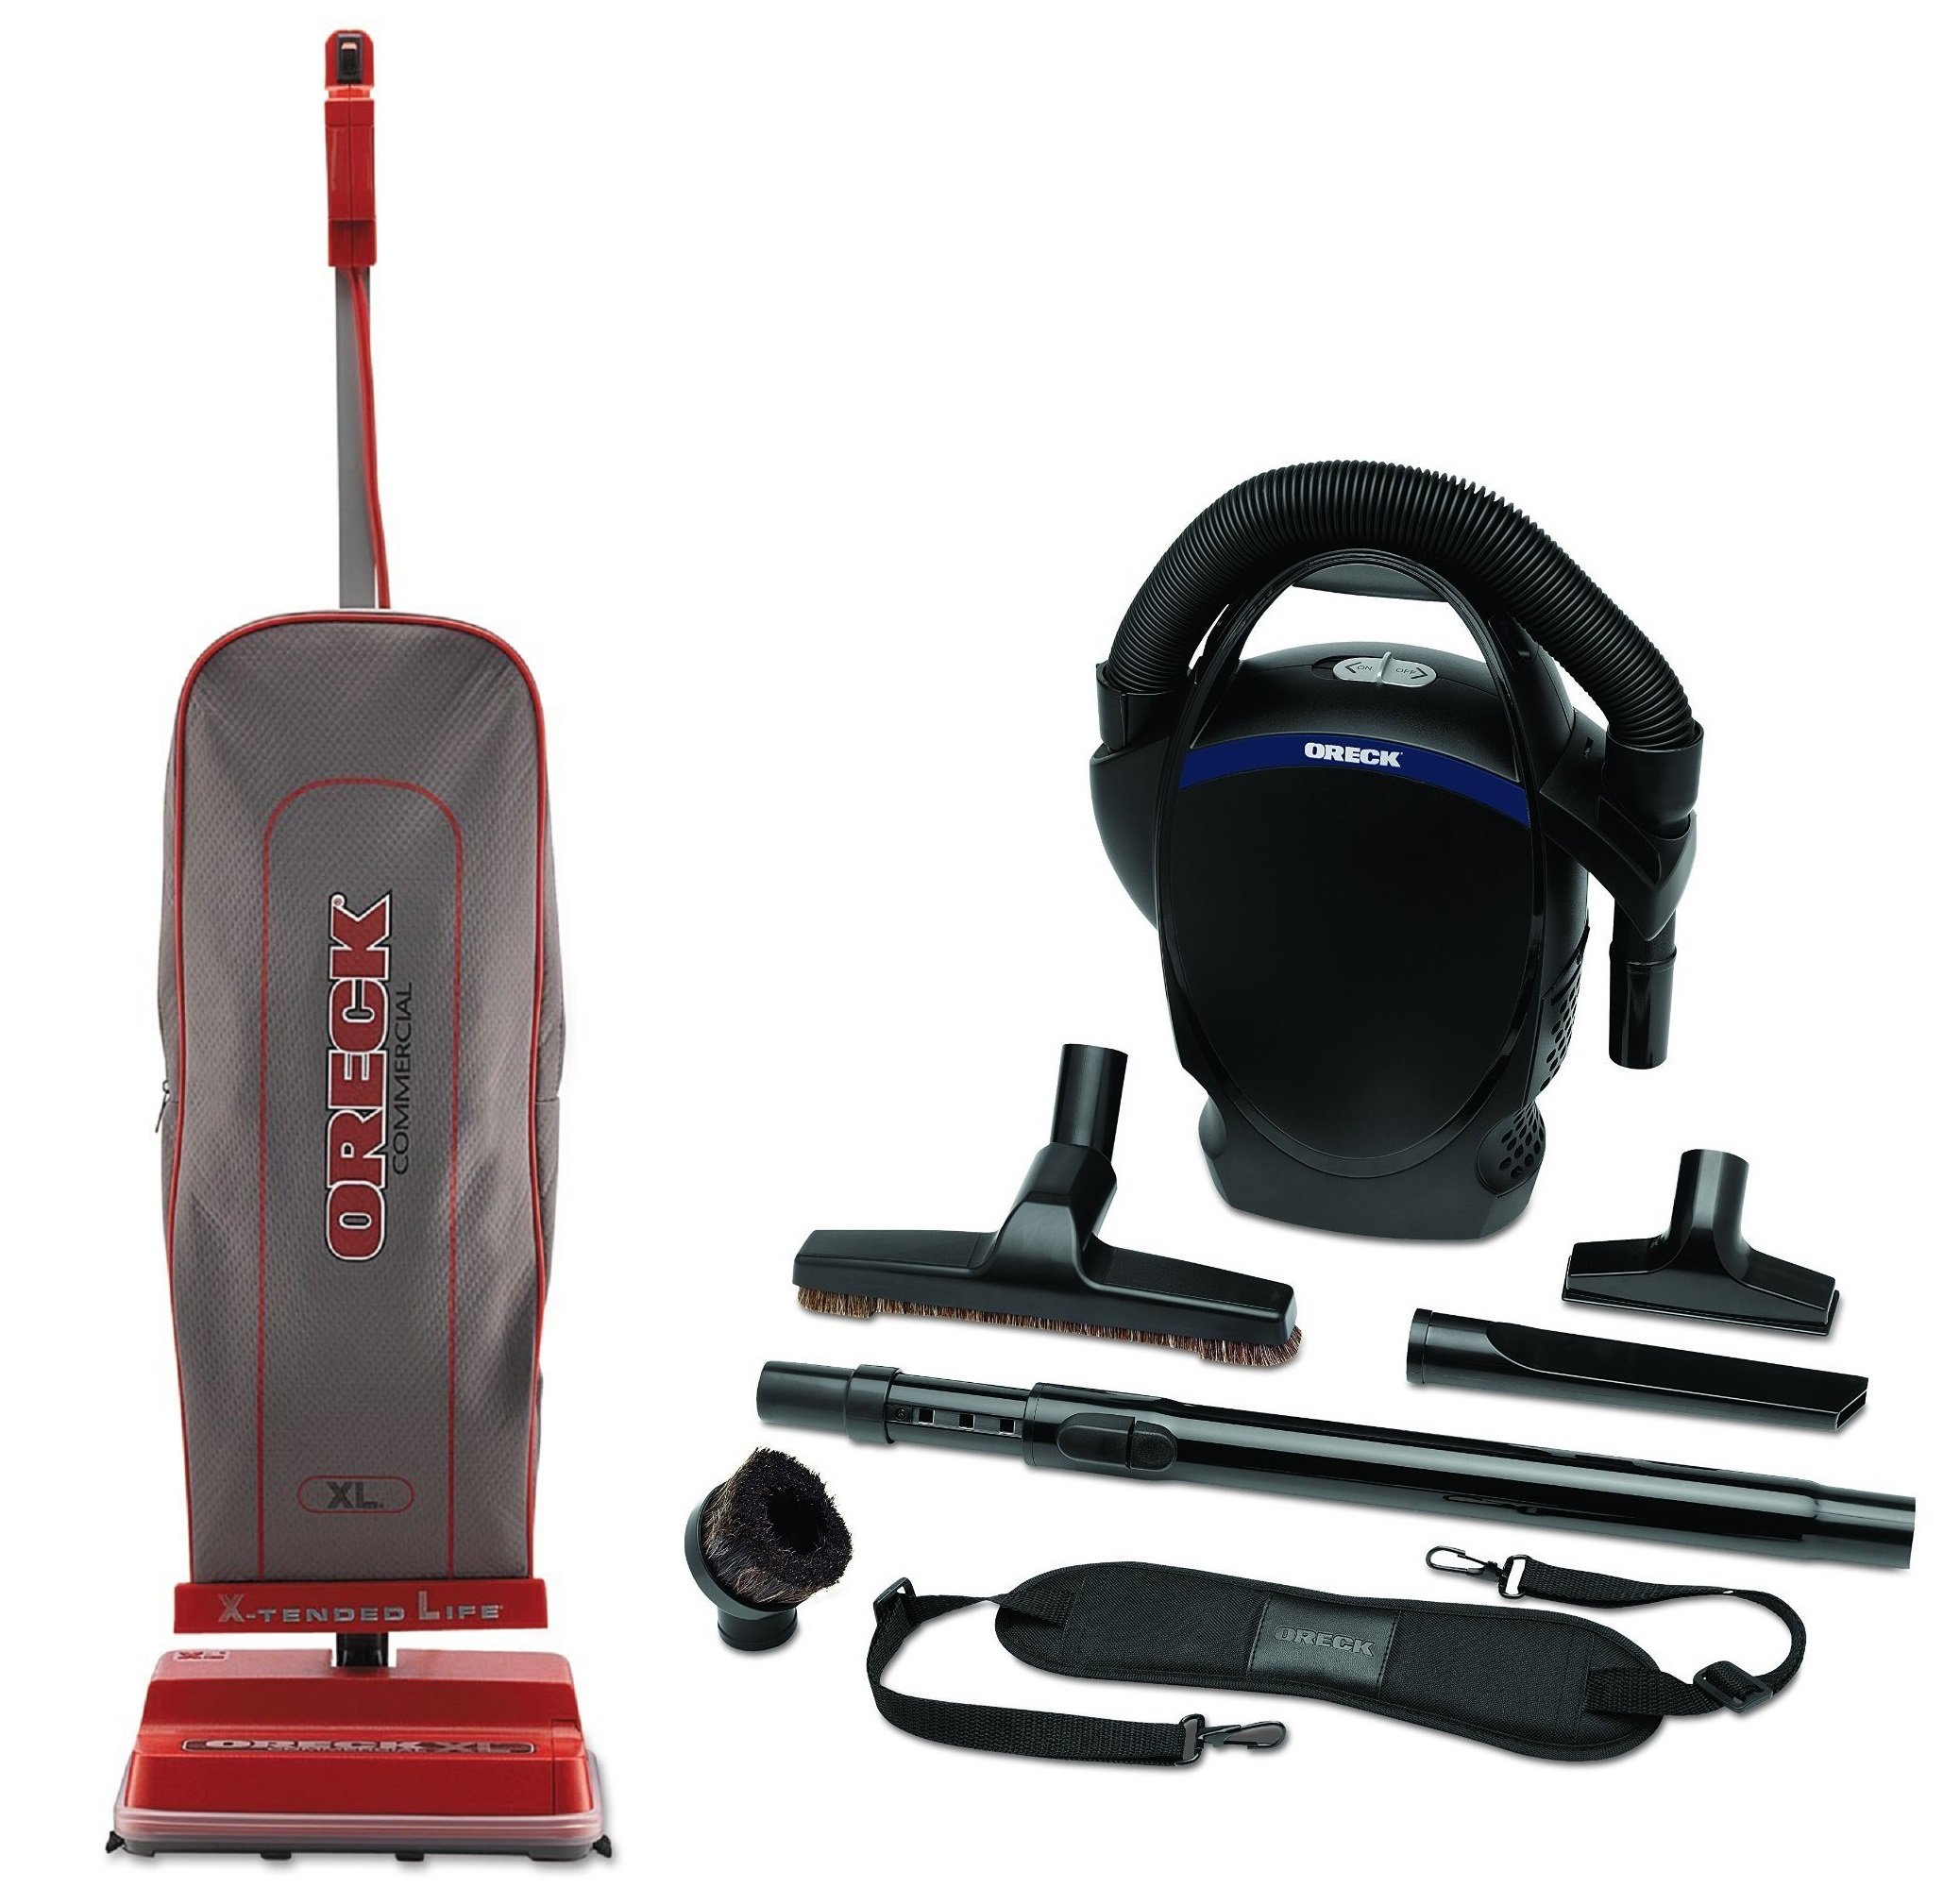 Oreck Commercial U2000R-1 120 V Red/Gray Upright Vacuum Bundle with Oreck Ultimate Handheld Bagged Canister Vacuum CC1600